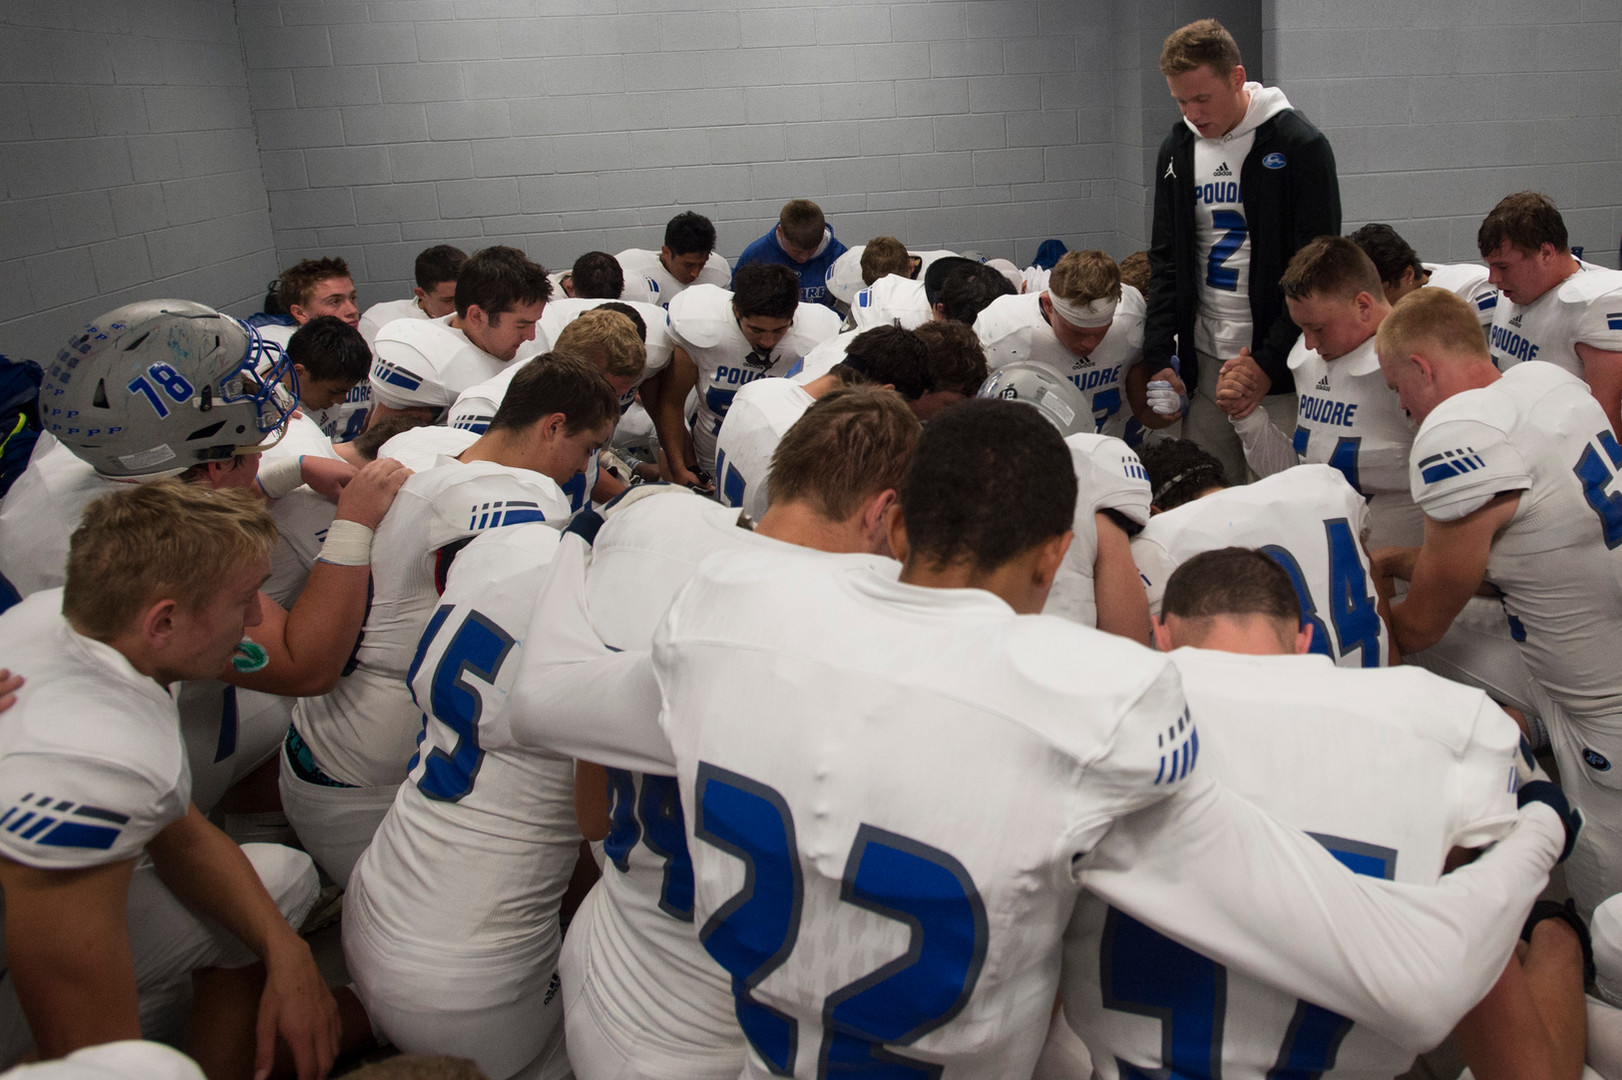 6:47 p.m. - Troy McFadden leads the Impalas in a prayer before they exit the locker room at EchoPark Stadium in Parker Thursday, October 13, 2016.